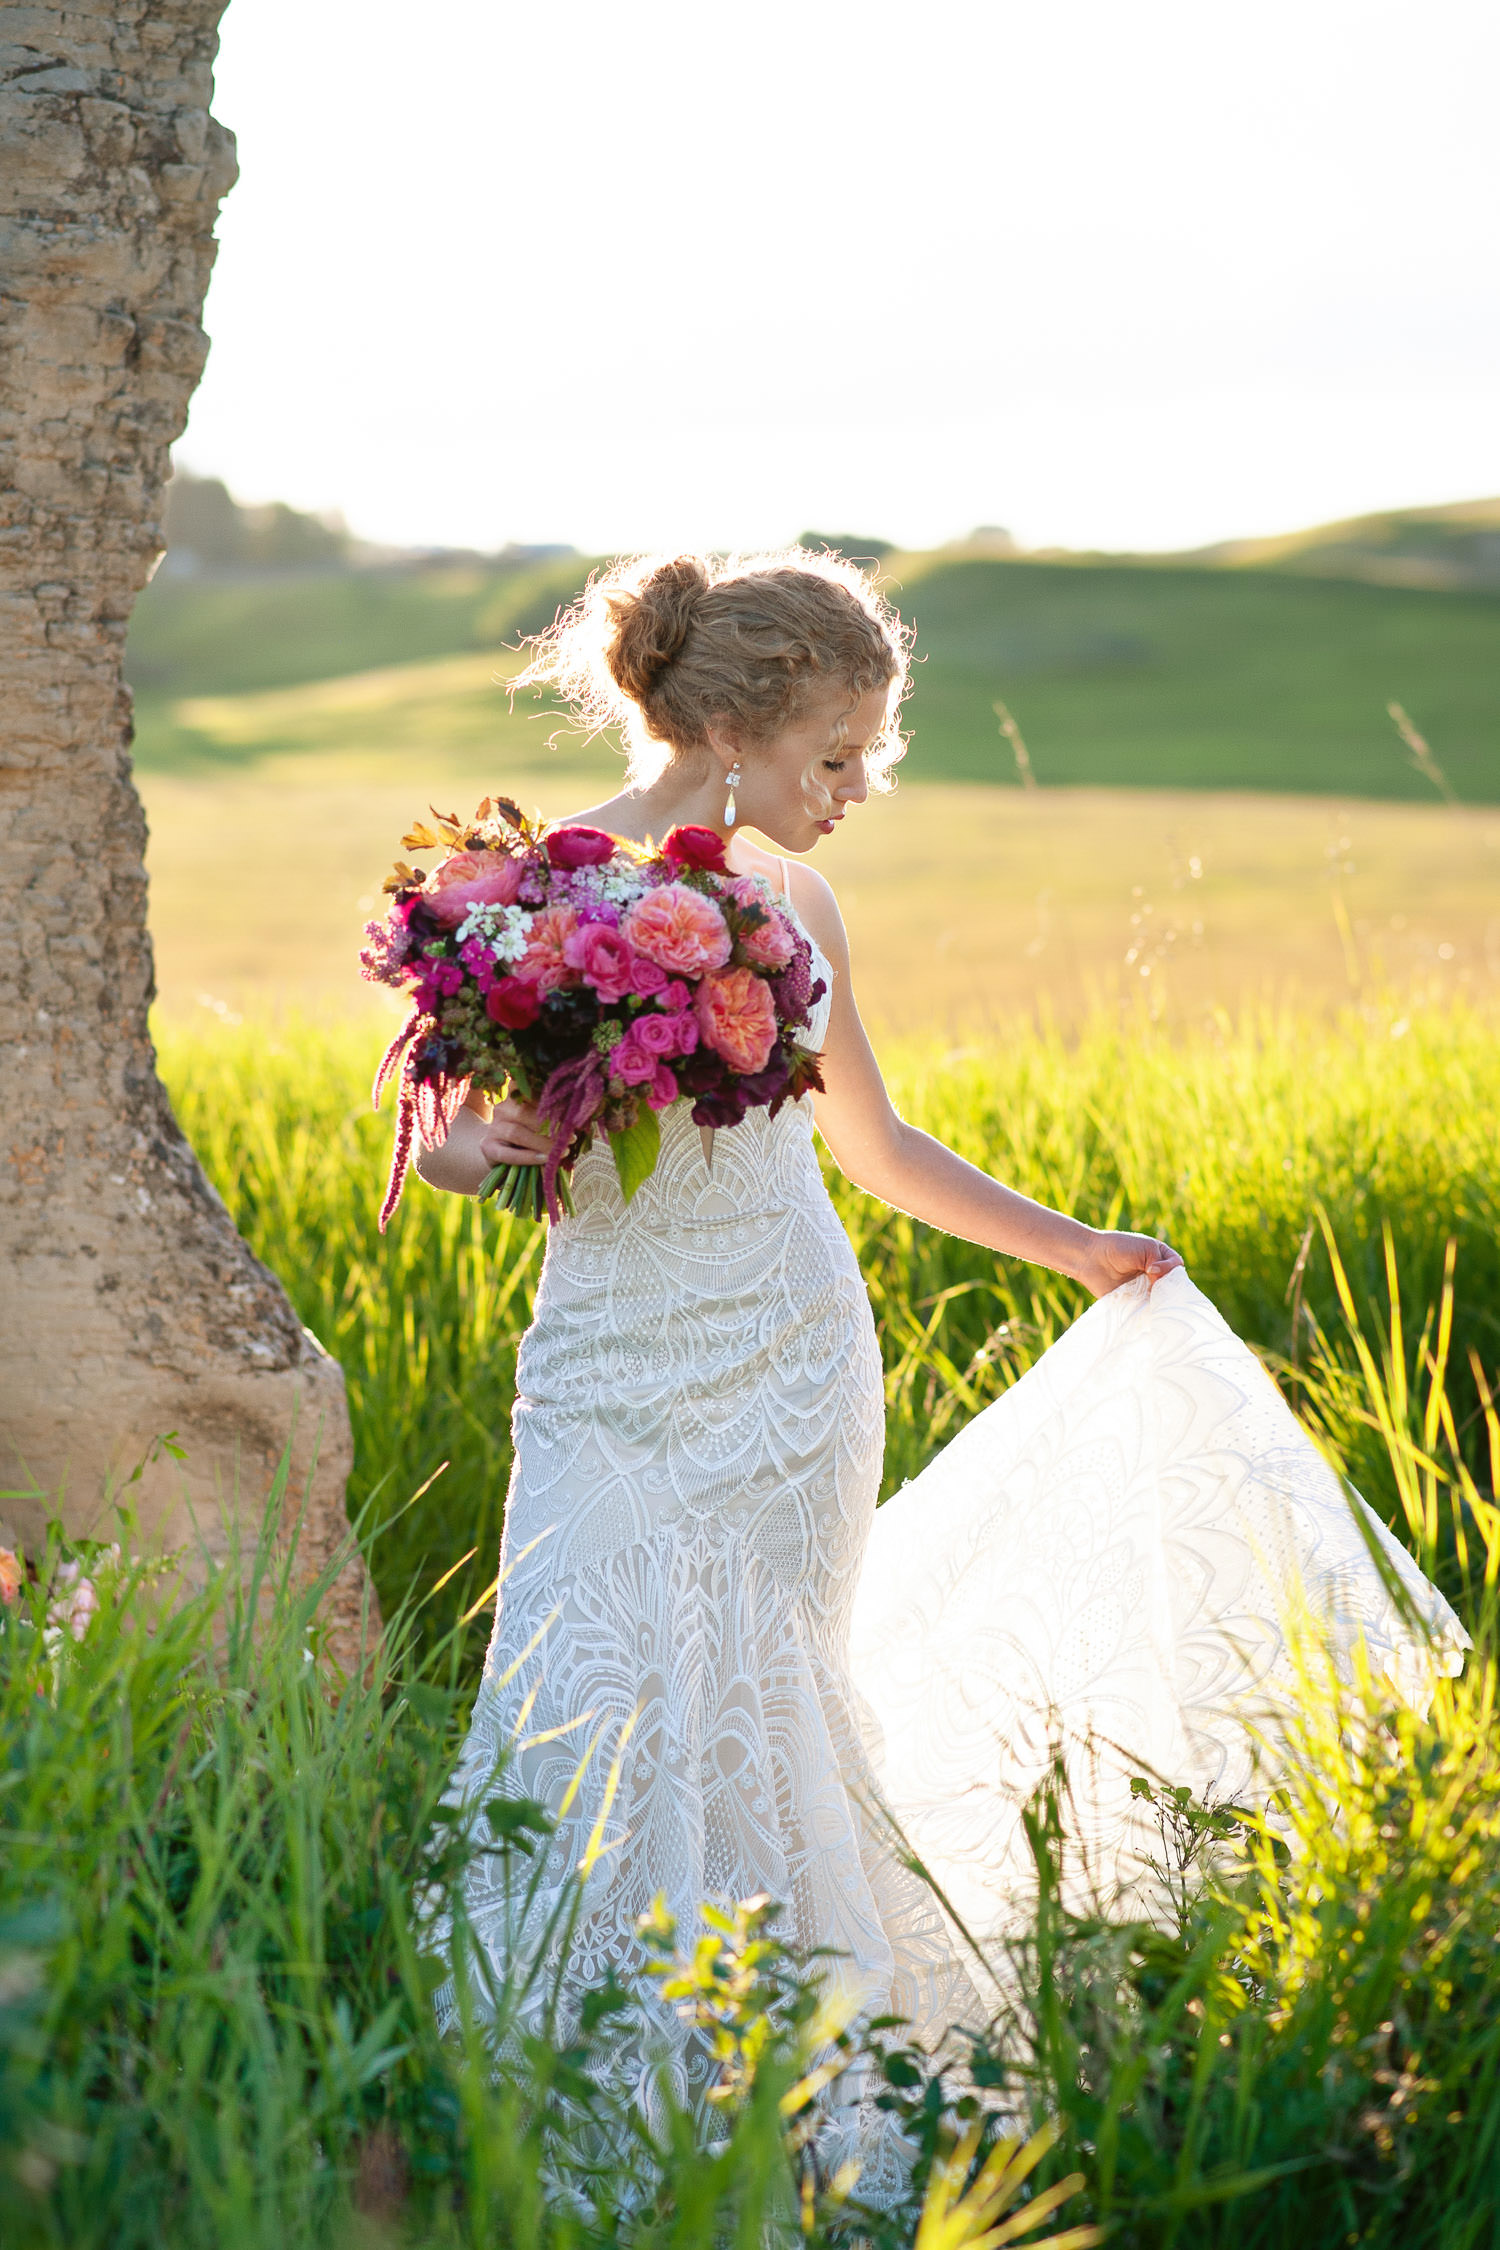 bride carrying a pink bouquet from Flowers by Janie captured by Tara Whittaker Photography